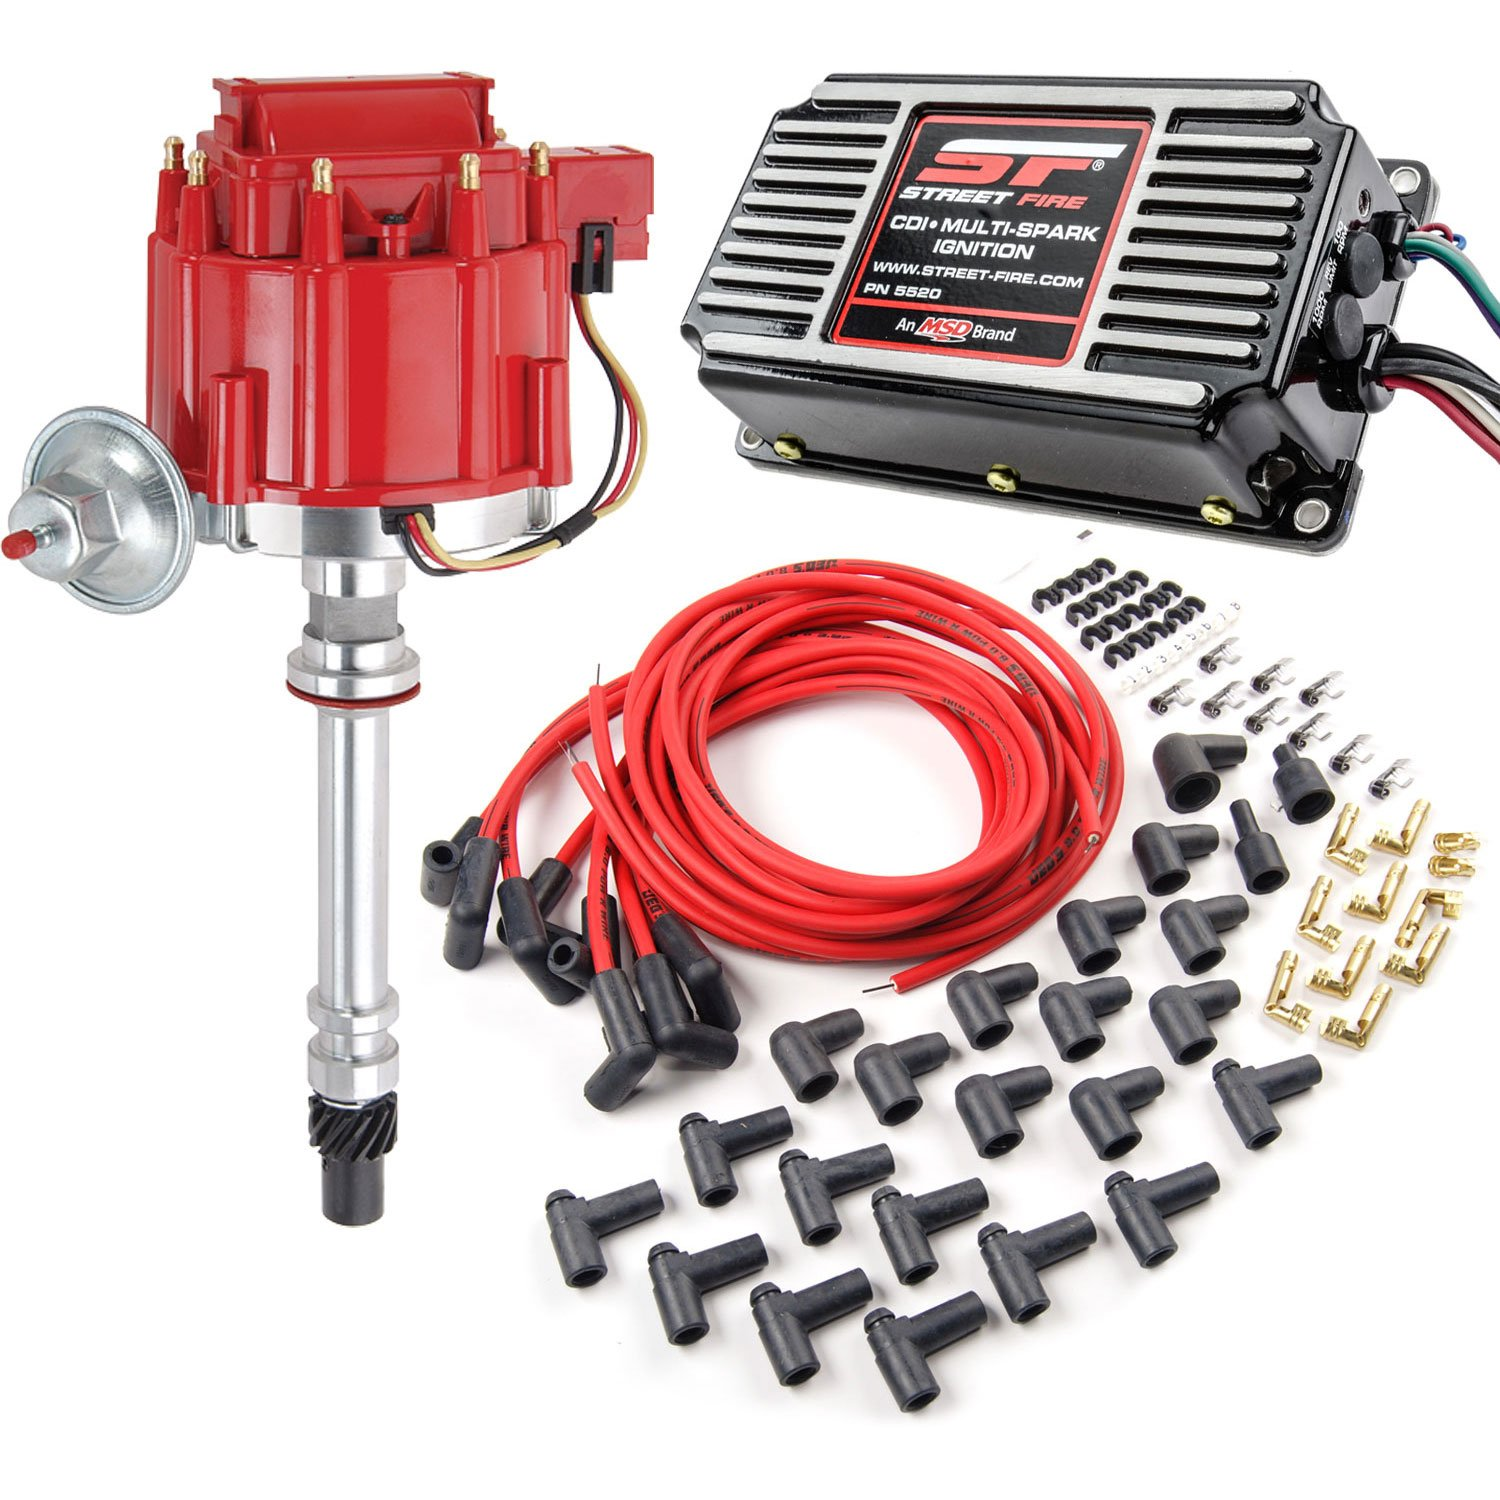 JEGS Performance Products 40005K2 JEGS HEI Street Spark Distributor Kit